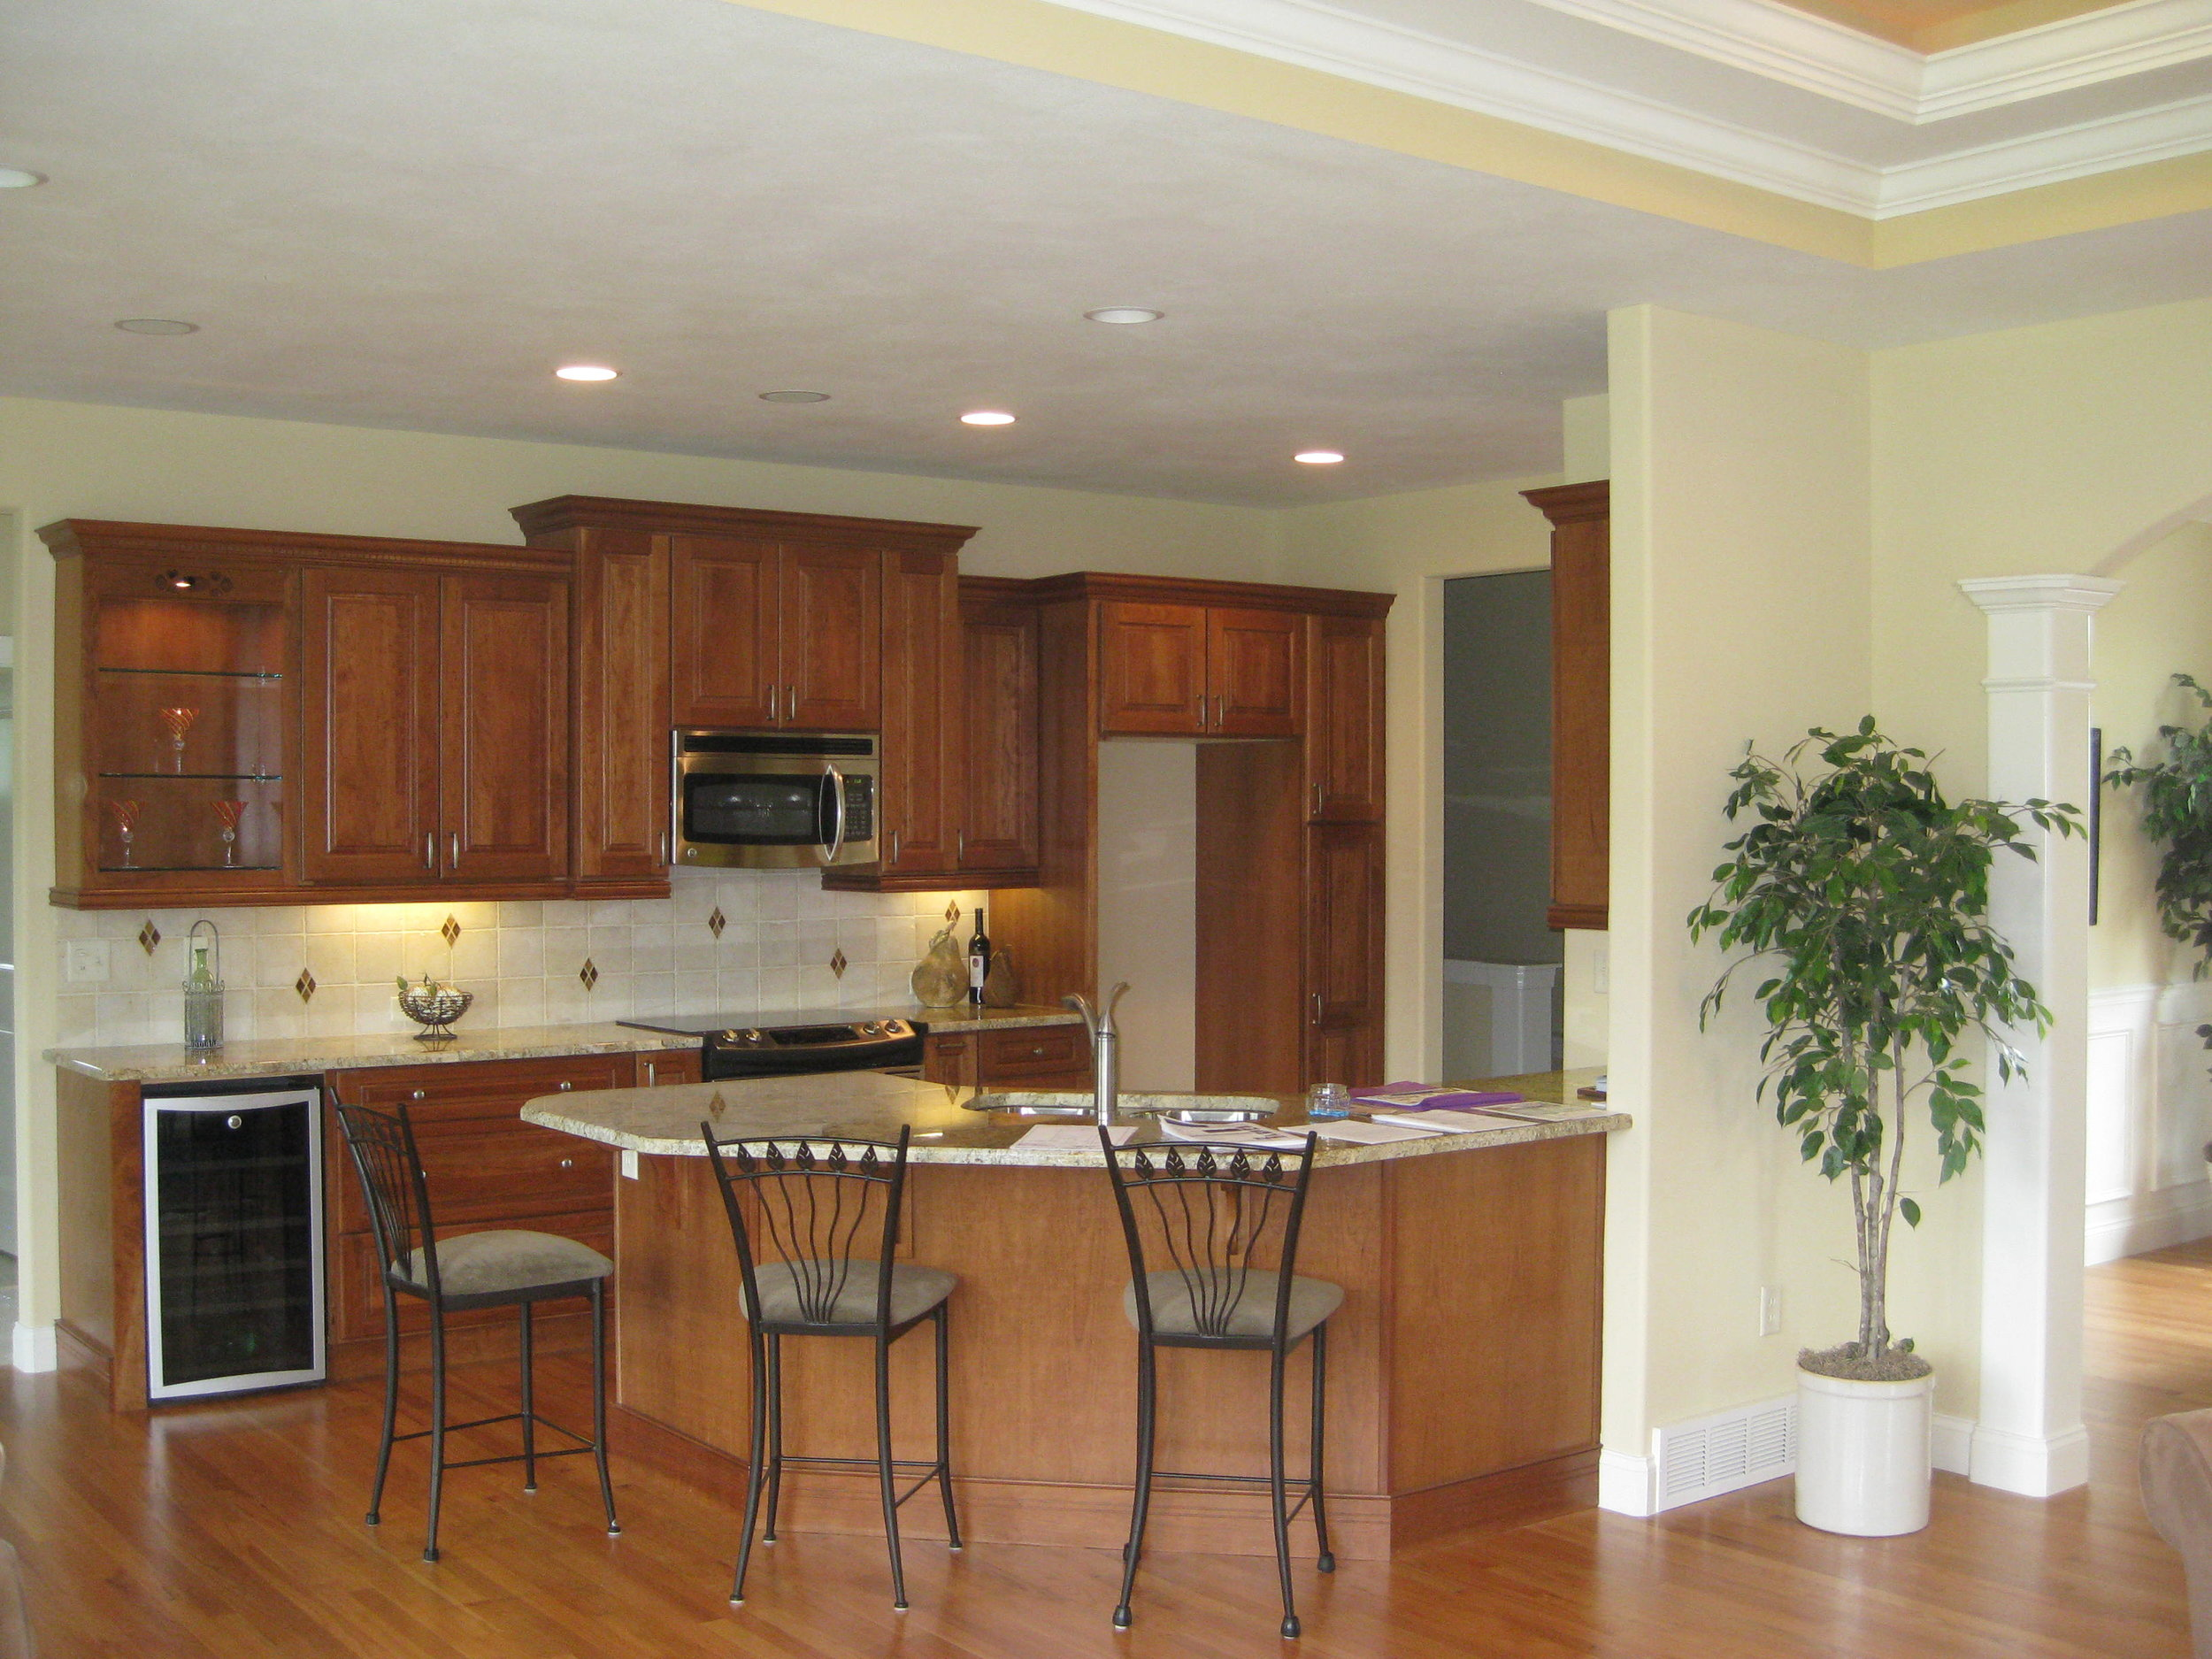 Captiva TB4 opt kitchen w wine copy.JPG